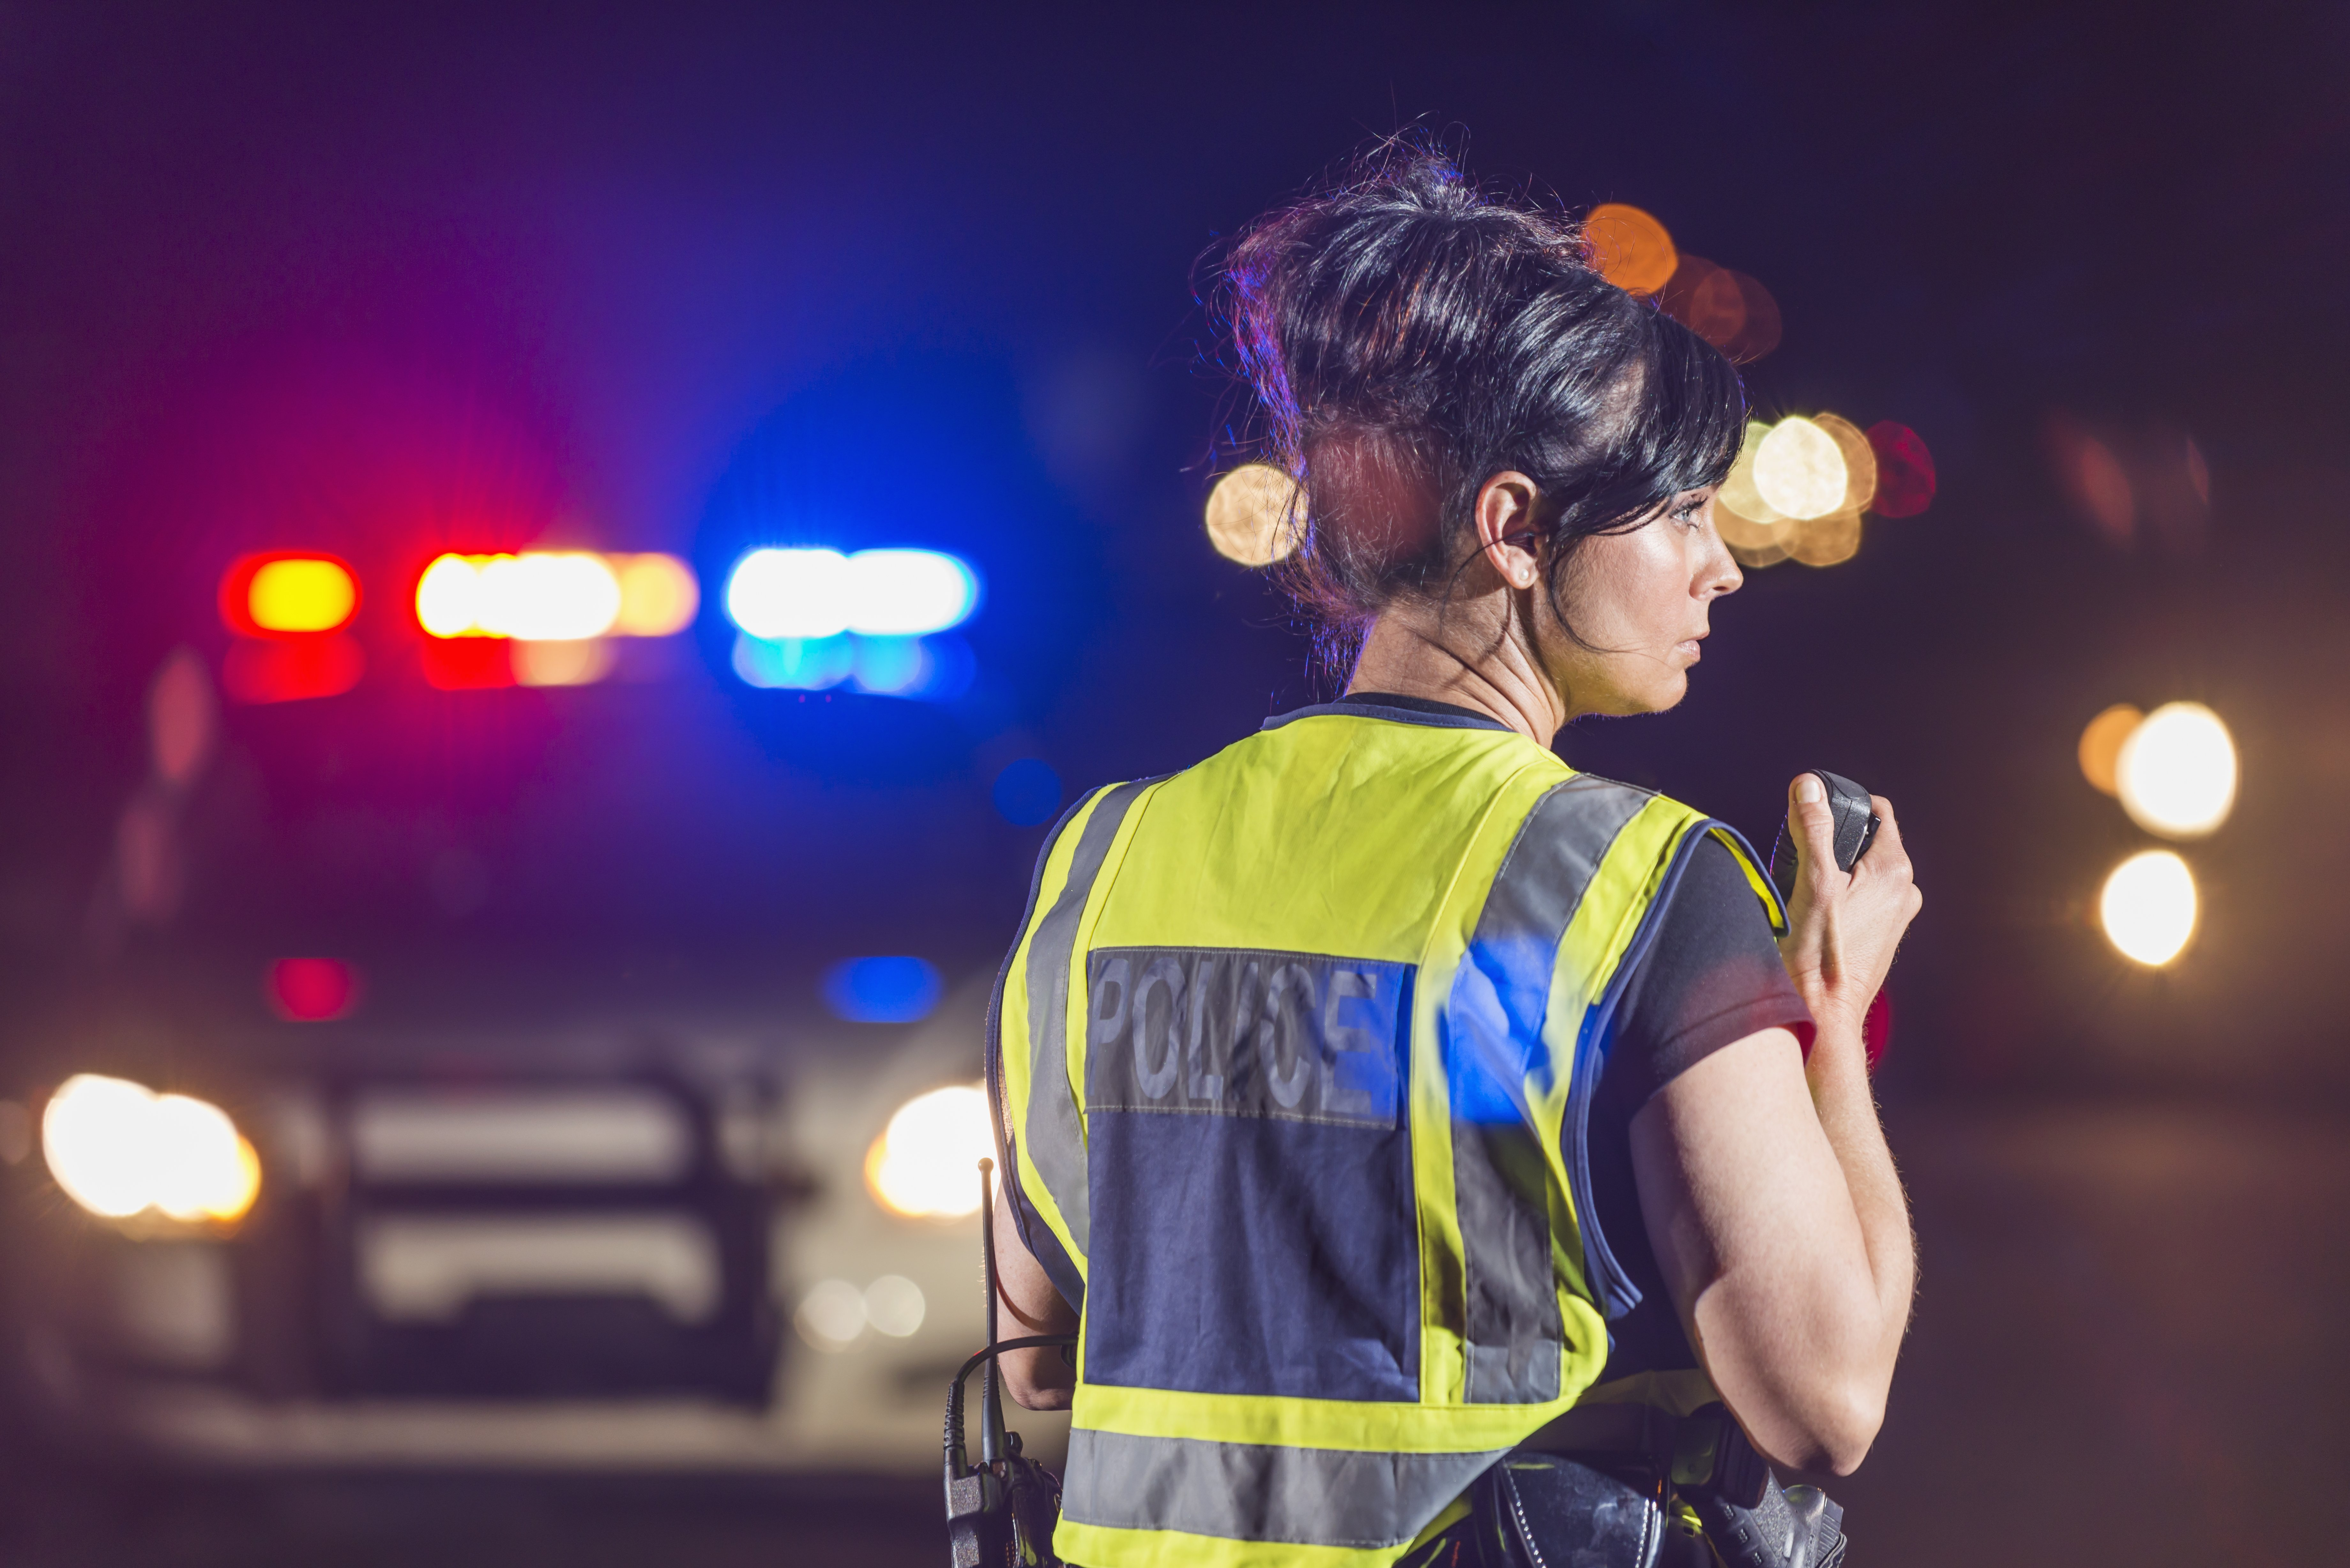 Rear view of a female police officer standing in the street at night, talking into her radio. Her patrol car is in the background with the emergency lights illuminated. She is wearing a yellow safety vest|Photo: Getty Images